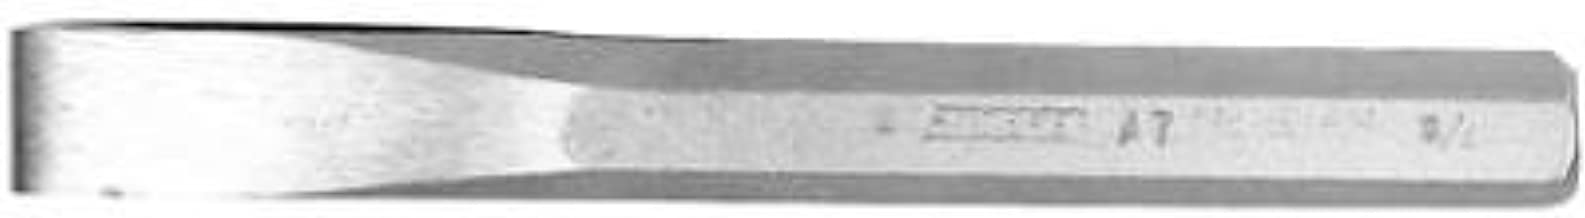 product image for ENDERES TOOL CO INC A-3 COLD CHISEL